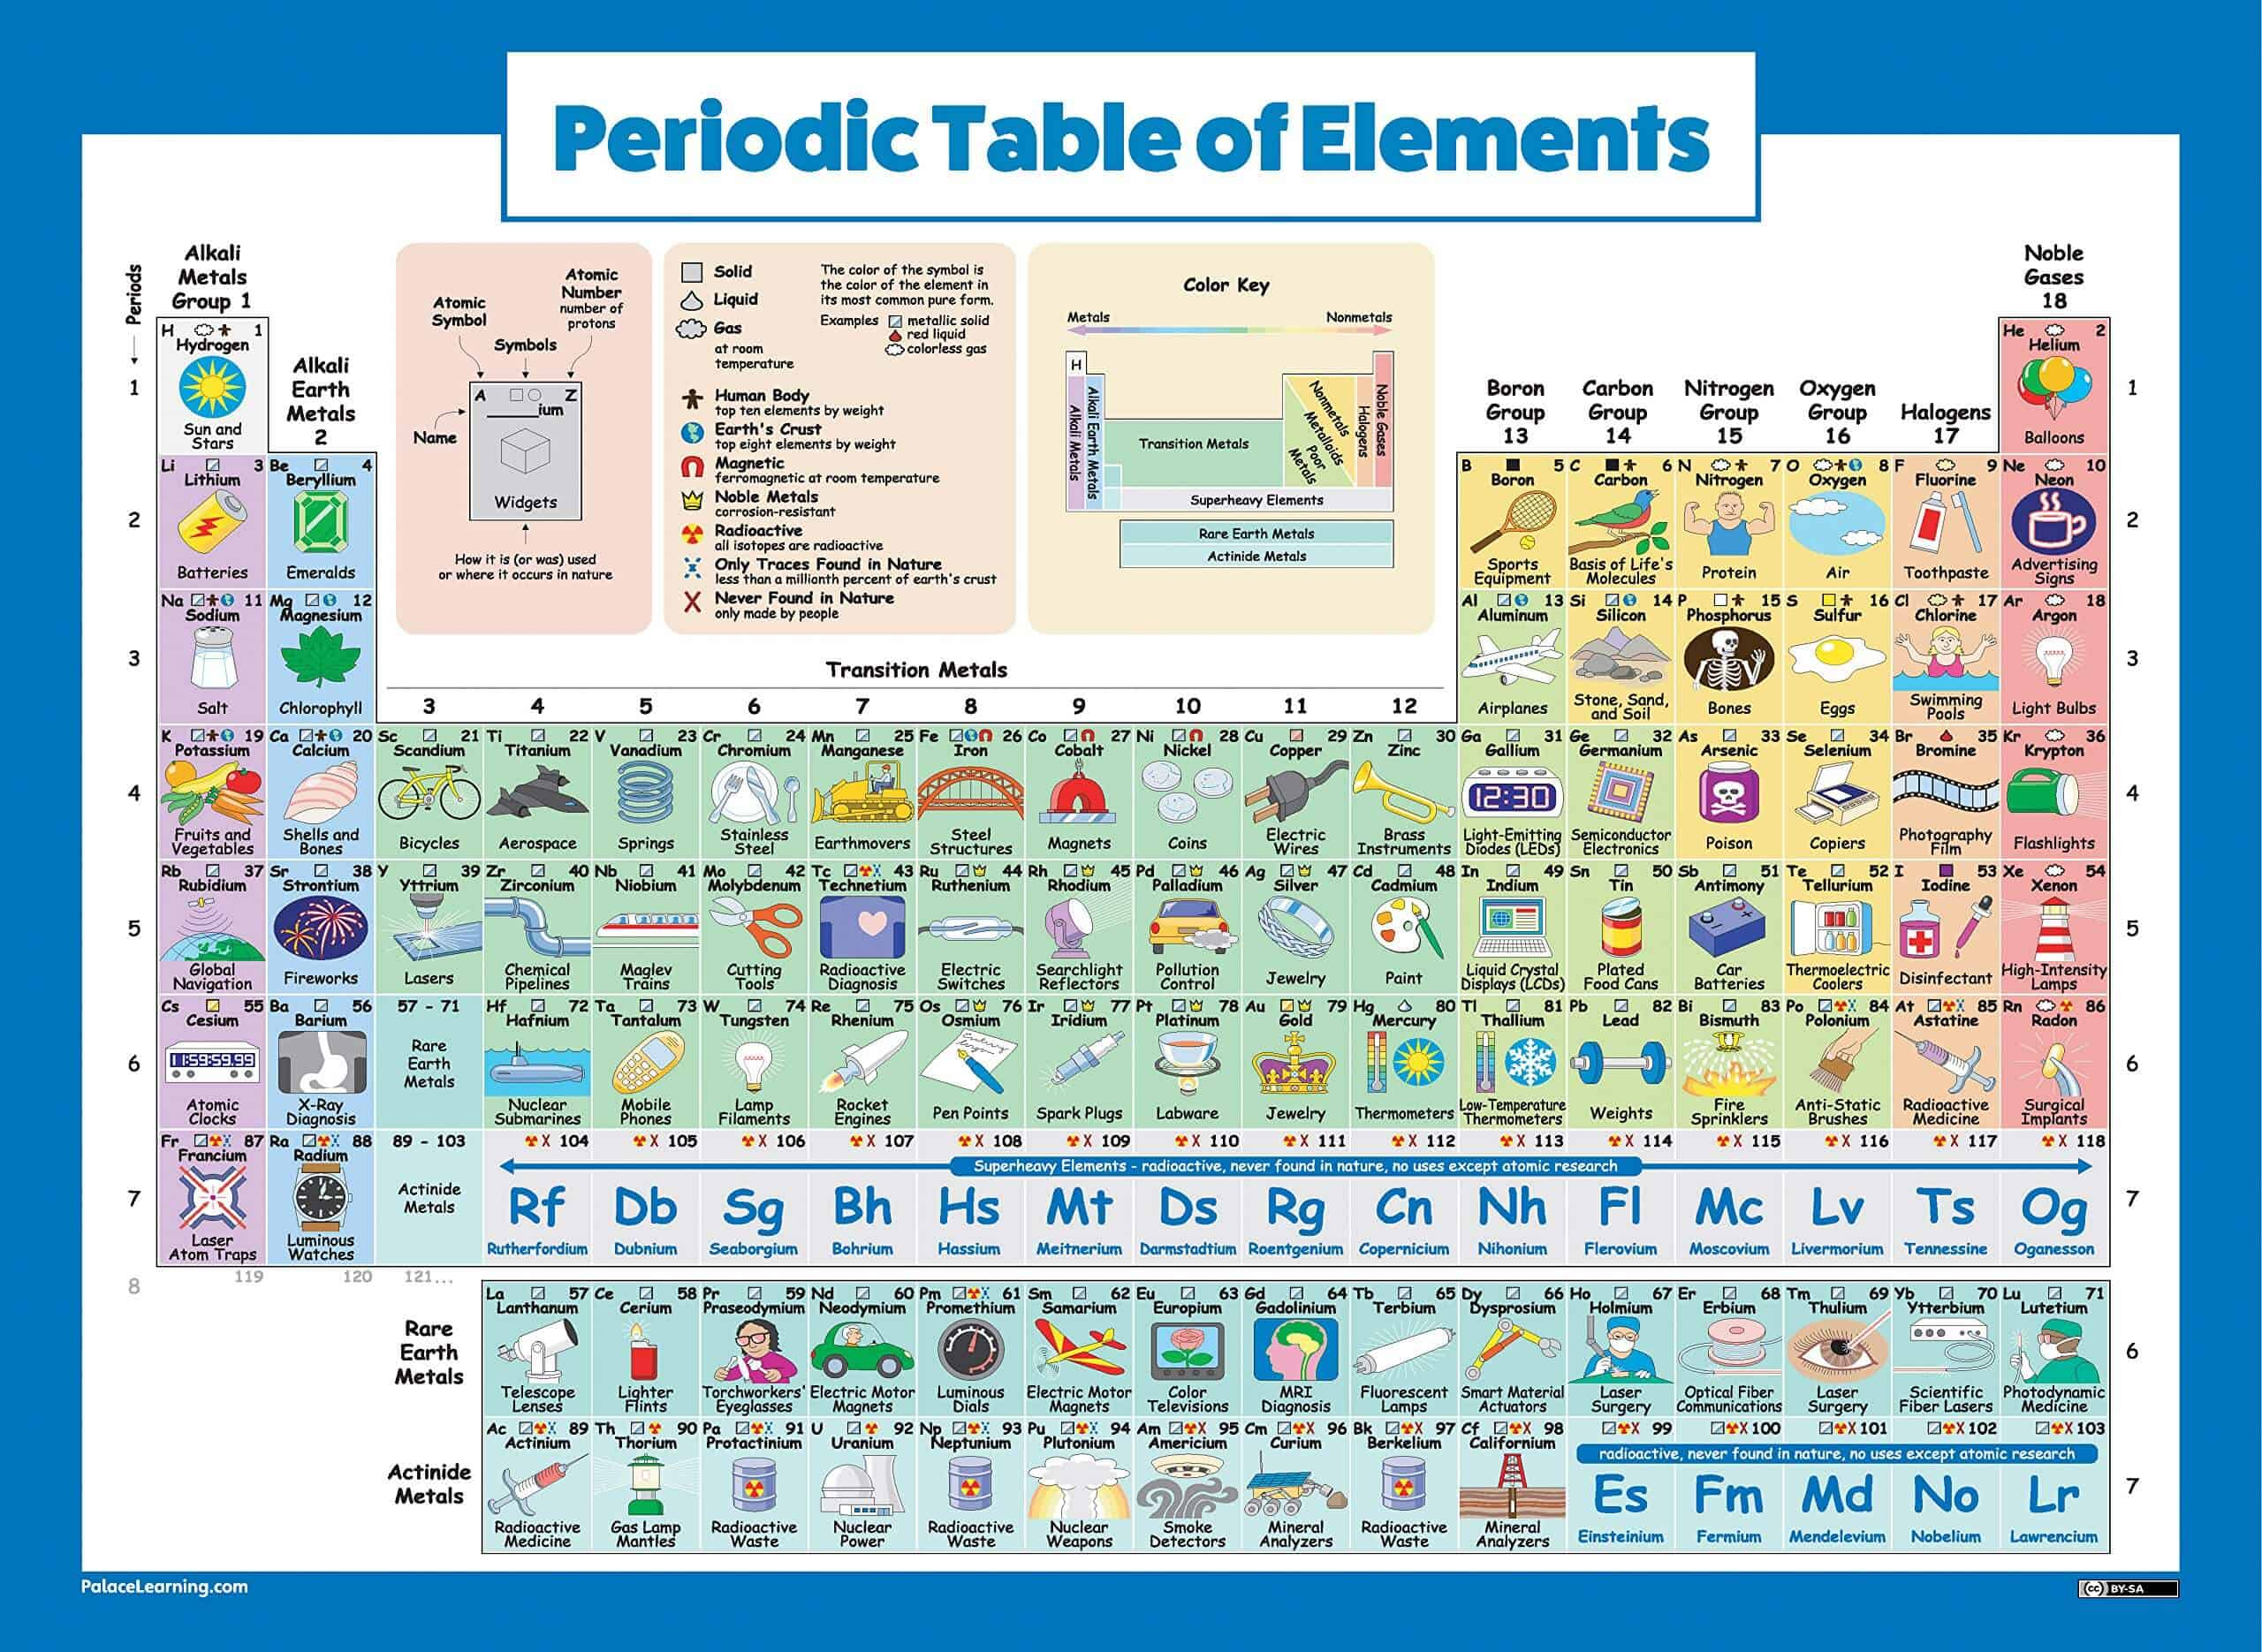 Periodic Table of Elements Poster For Kids